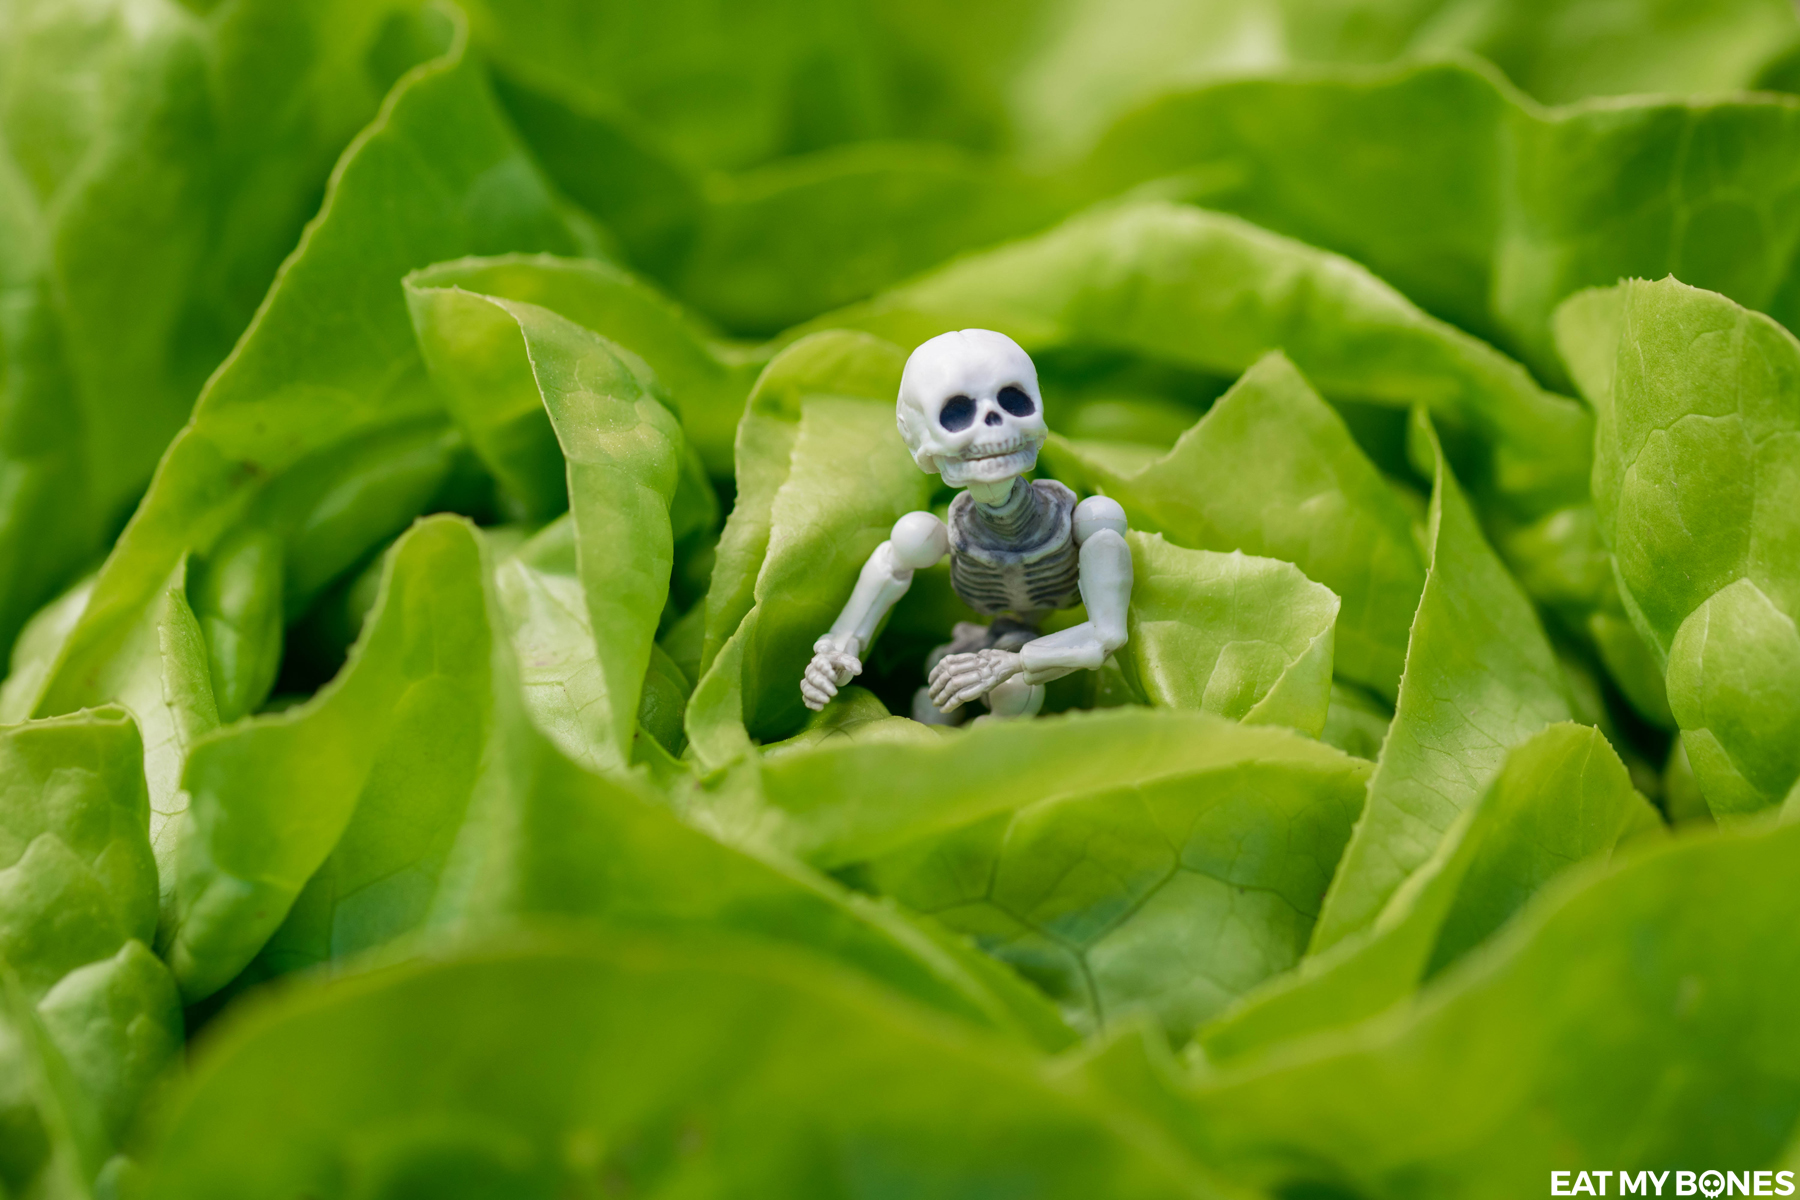 Mounette vegetable garden - Pose Skeleton - Toy photography - Miniature - Eat my Bones